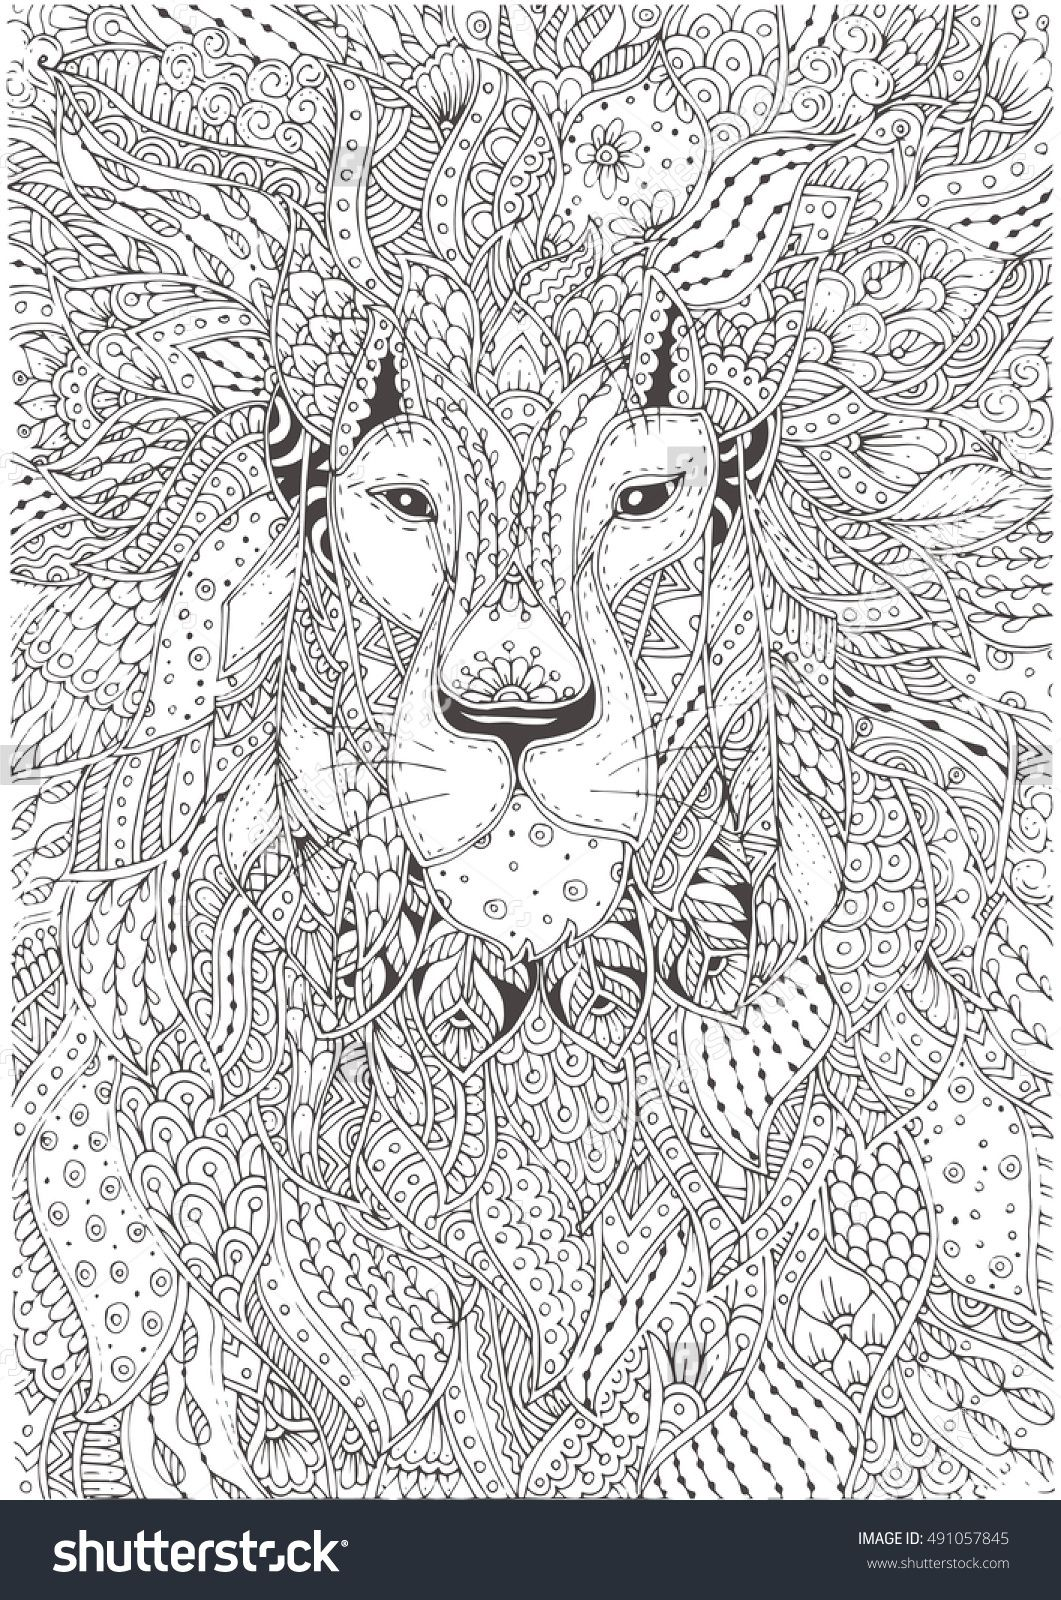 Hand-Drawn Lion With Ethnic Floral Pattern. Coloring Page - Zendala ...